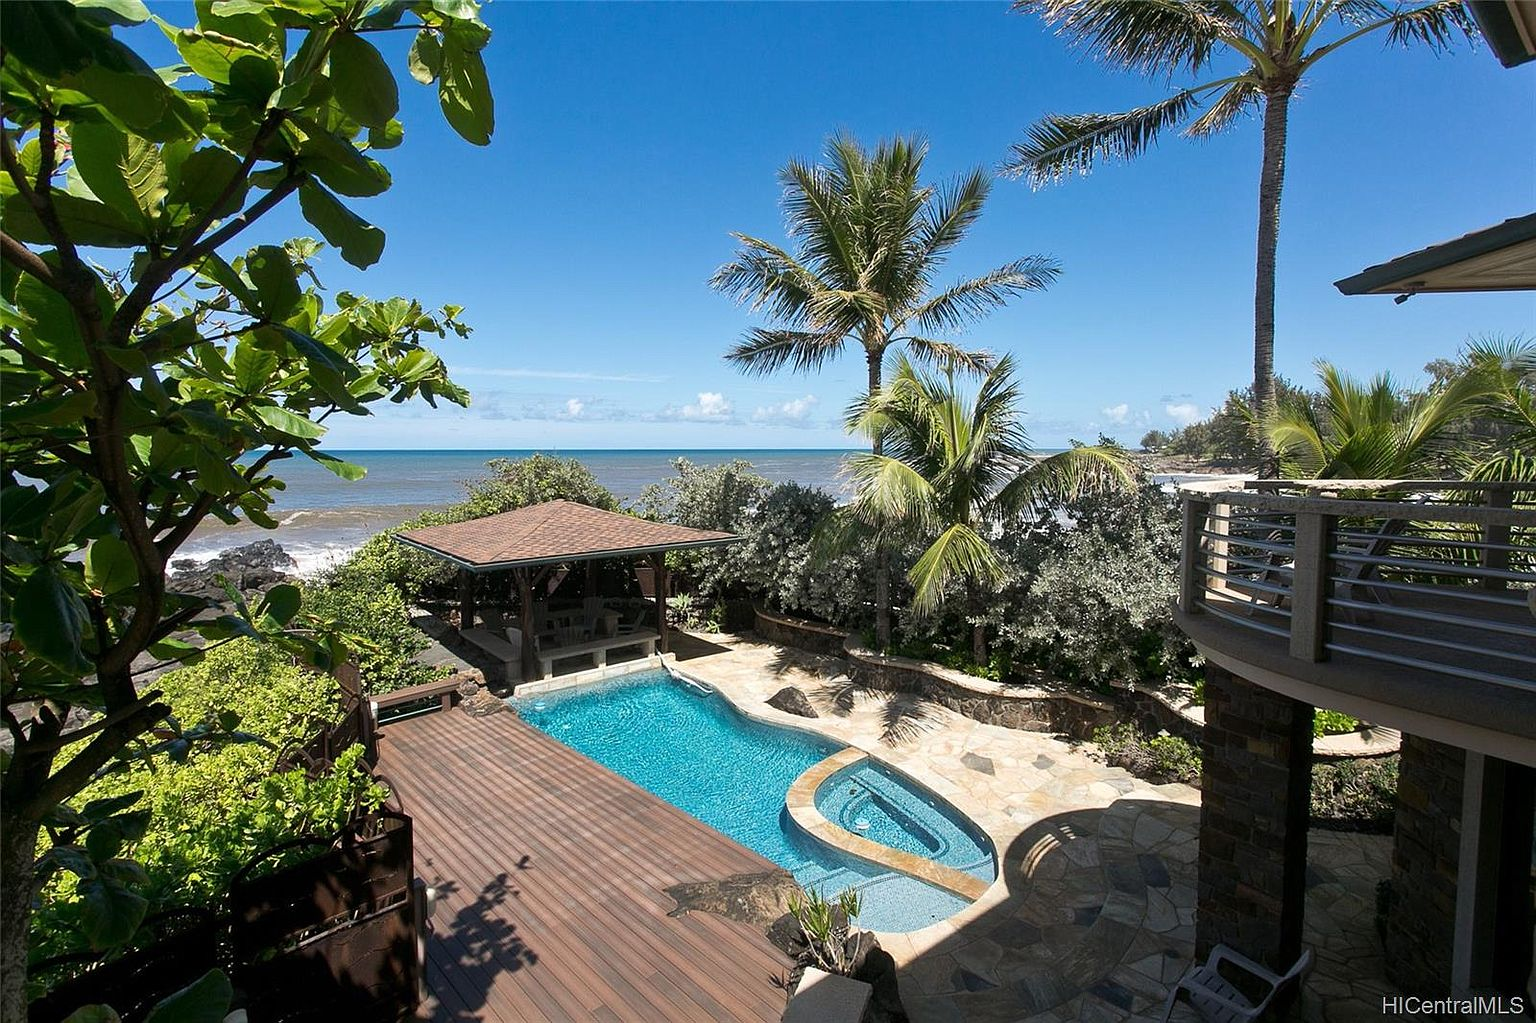 59-779 KAMEHAMEHA HWY, HALEIWA, HI 96612 - $5,100,000 home for sale, house images, photos and pics gallery